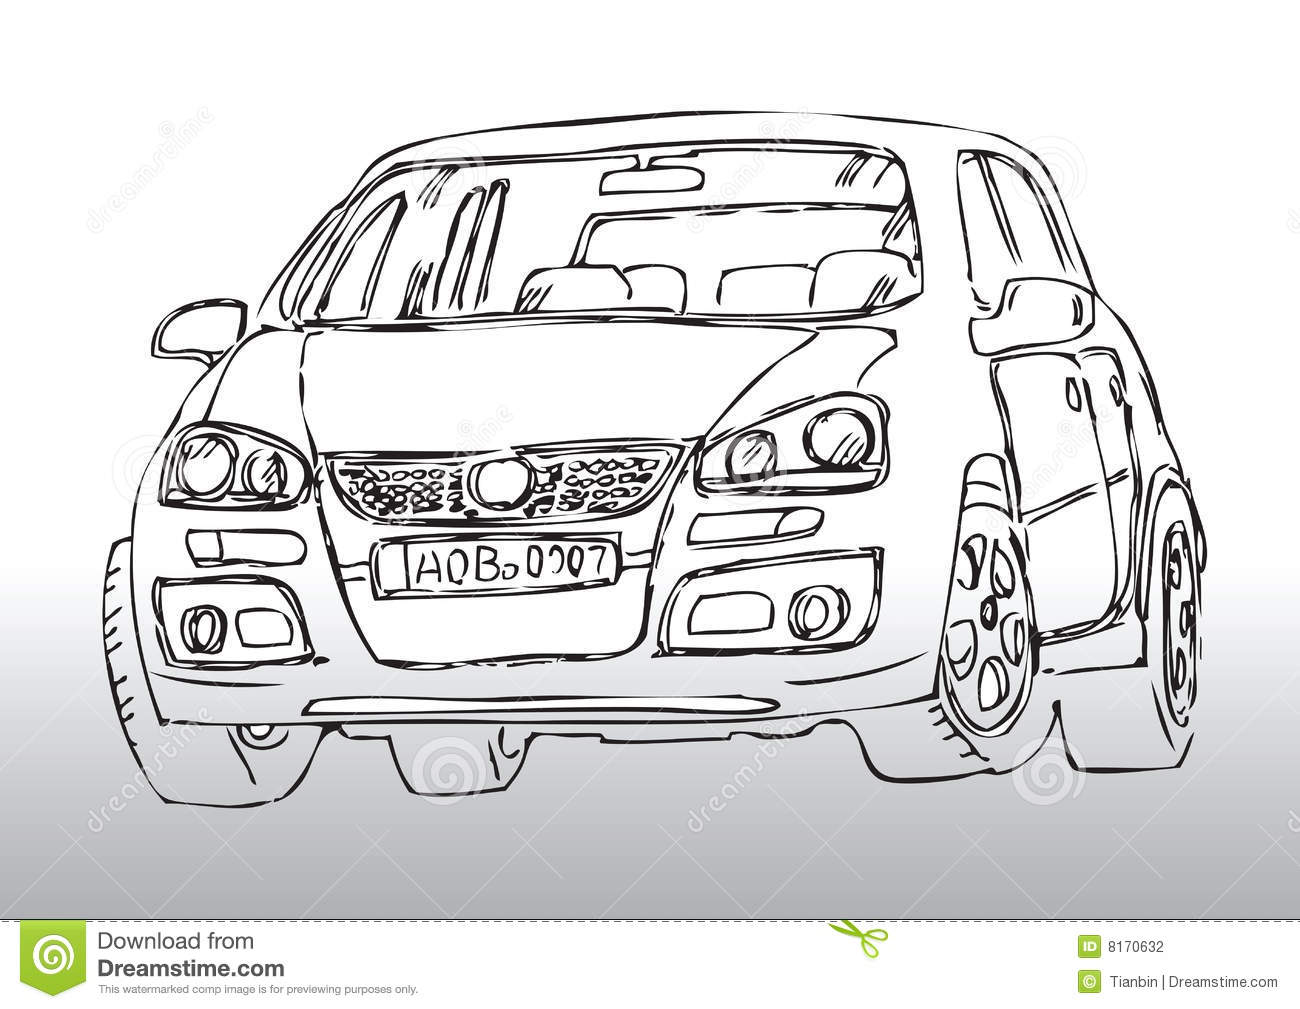 Hand drawn car sketch stock vector. Image of white, automotive ...